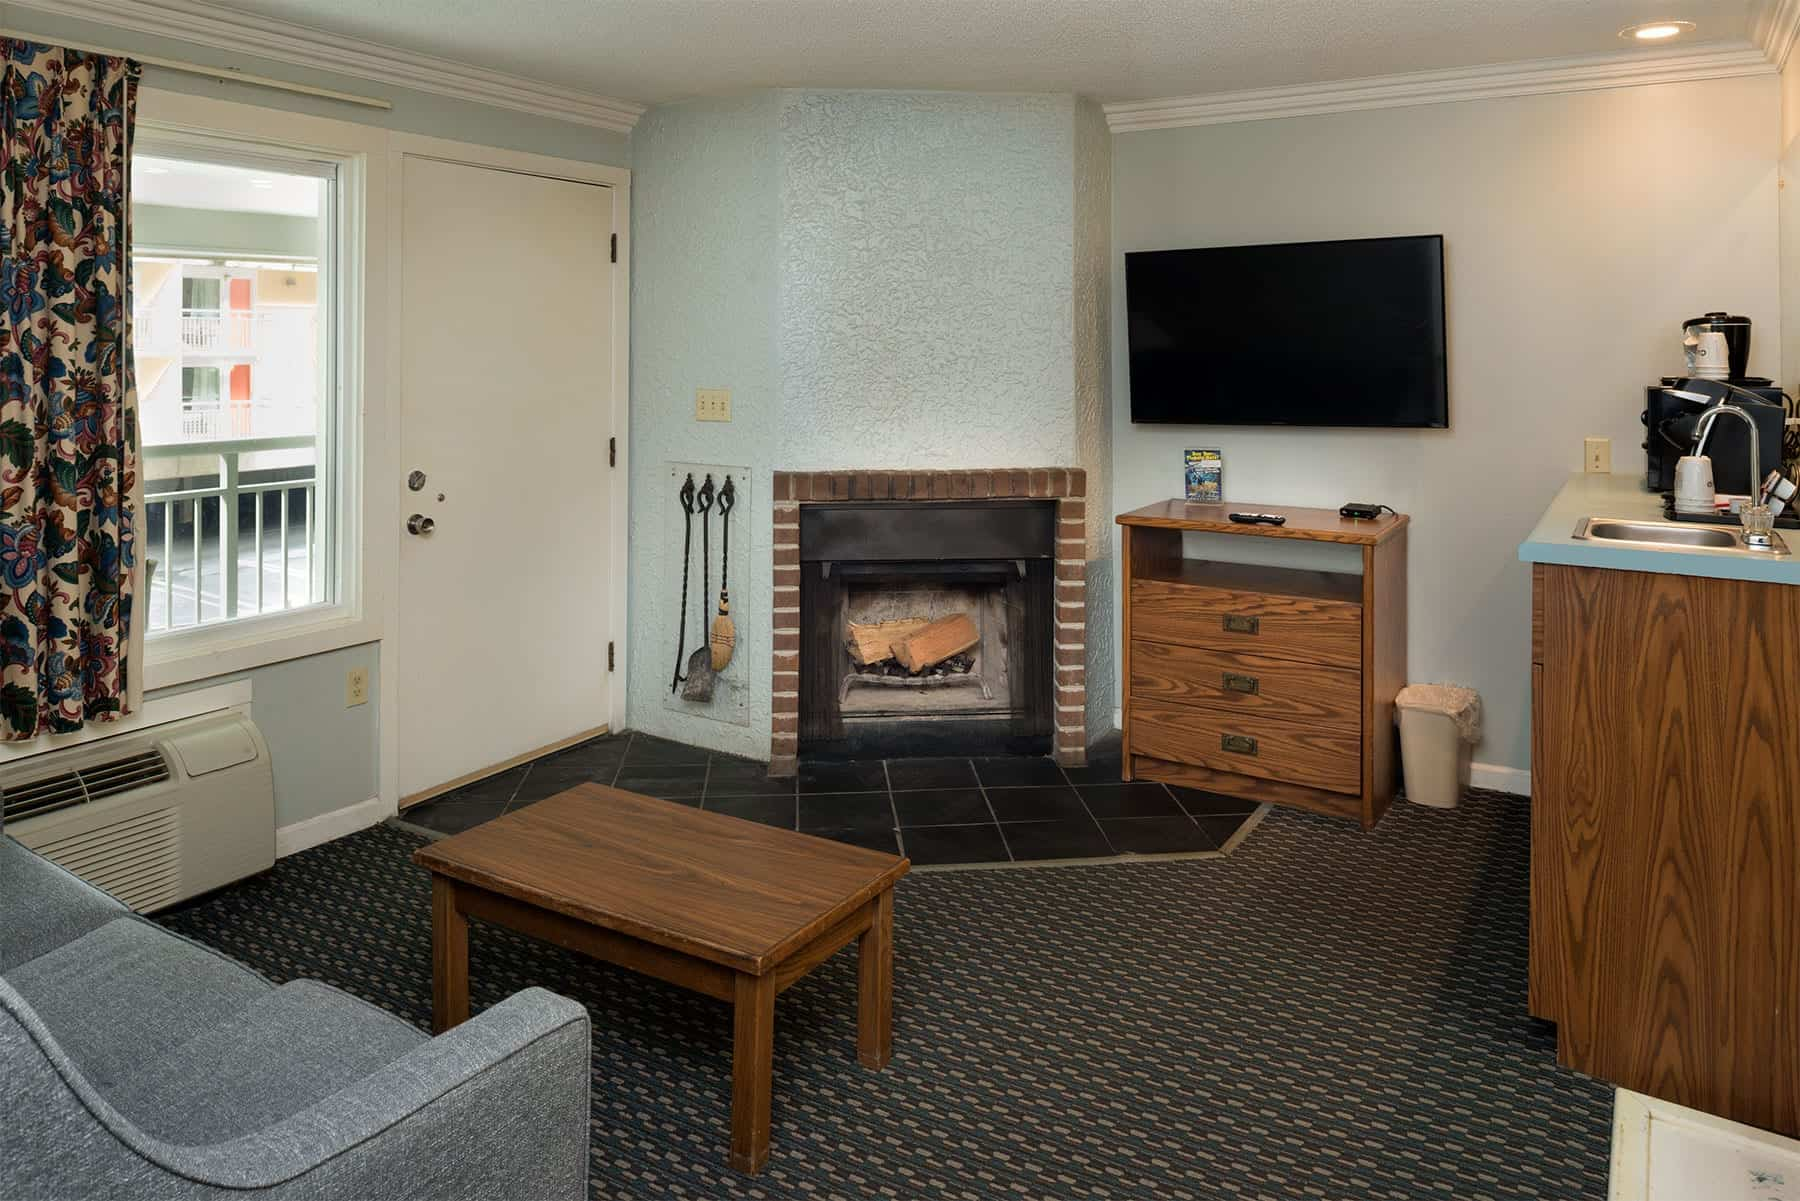 Suite with couch, fireplace, and coffee bar